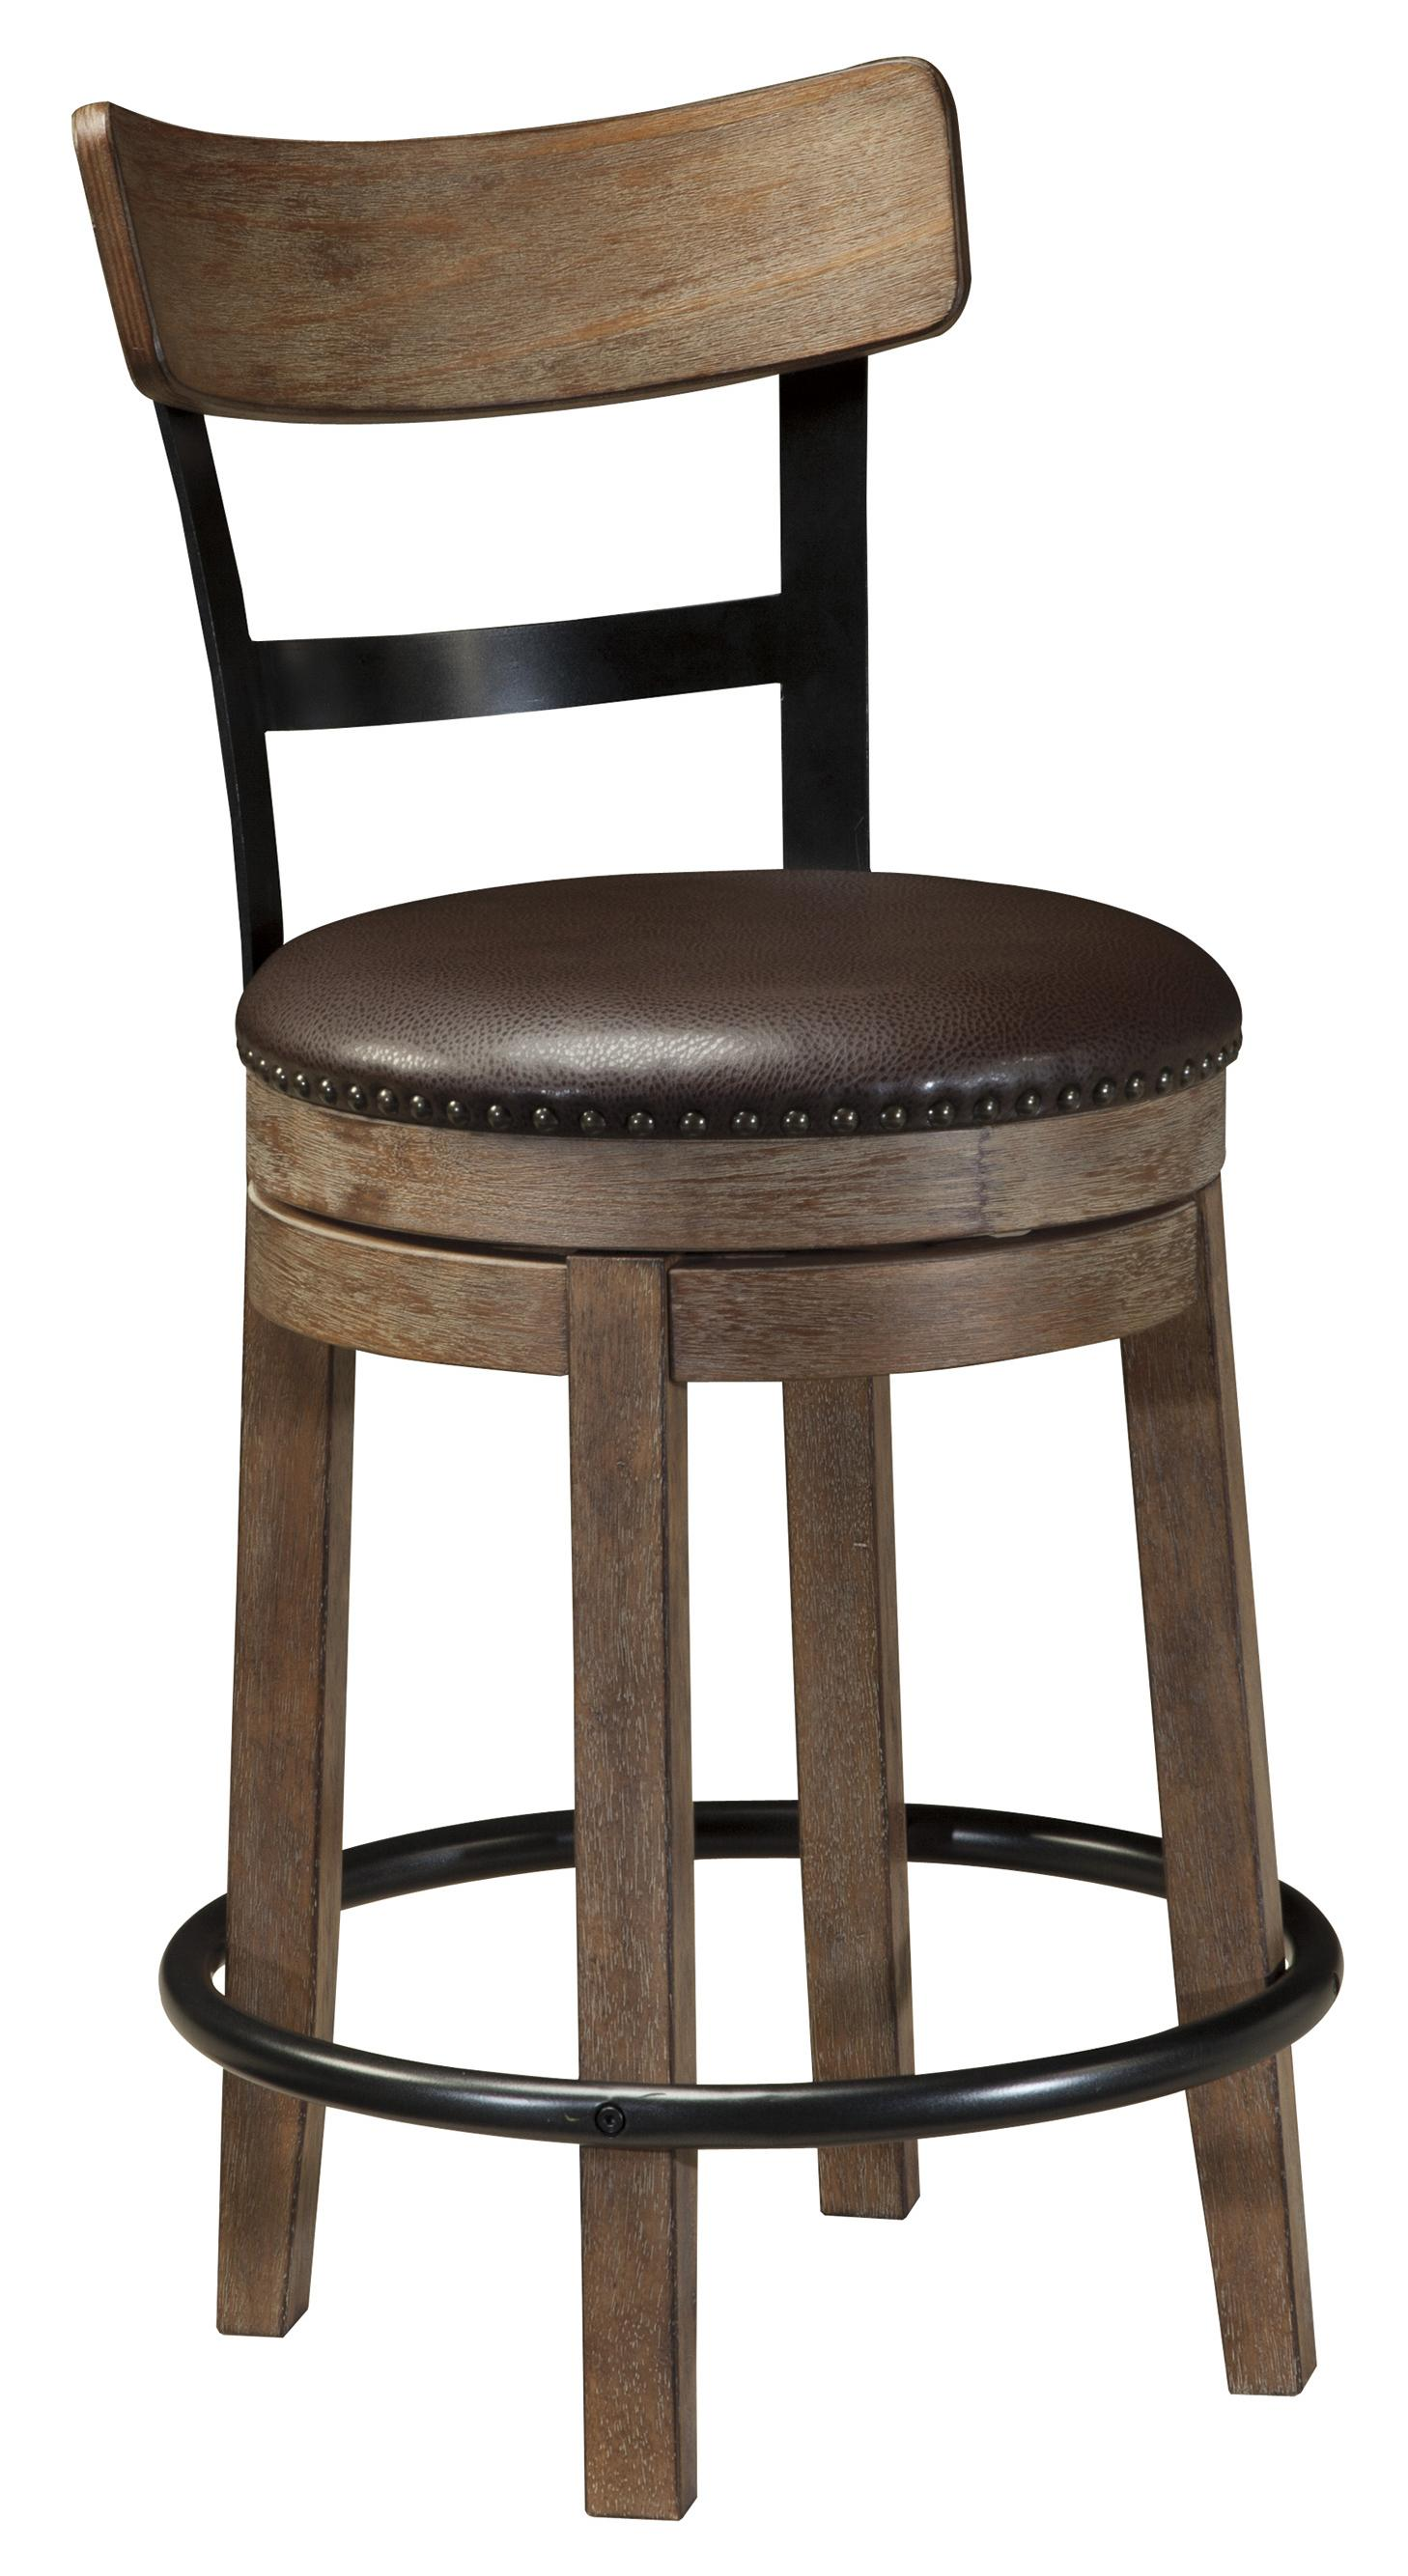 Pinnadel Upholstered Swivel Barstool by Signature Design by Ashley at Zak's Warehouse Clearance Center